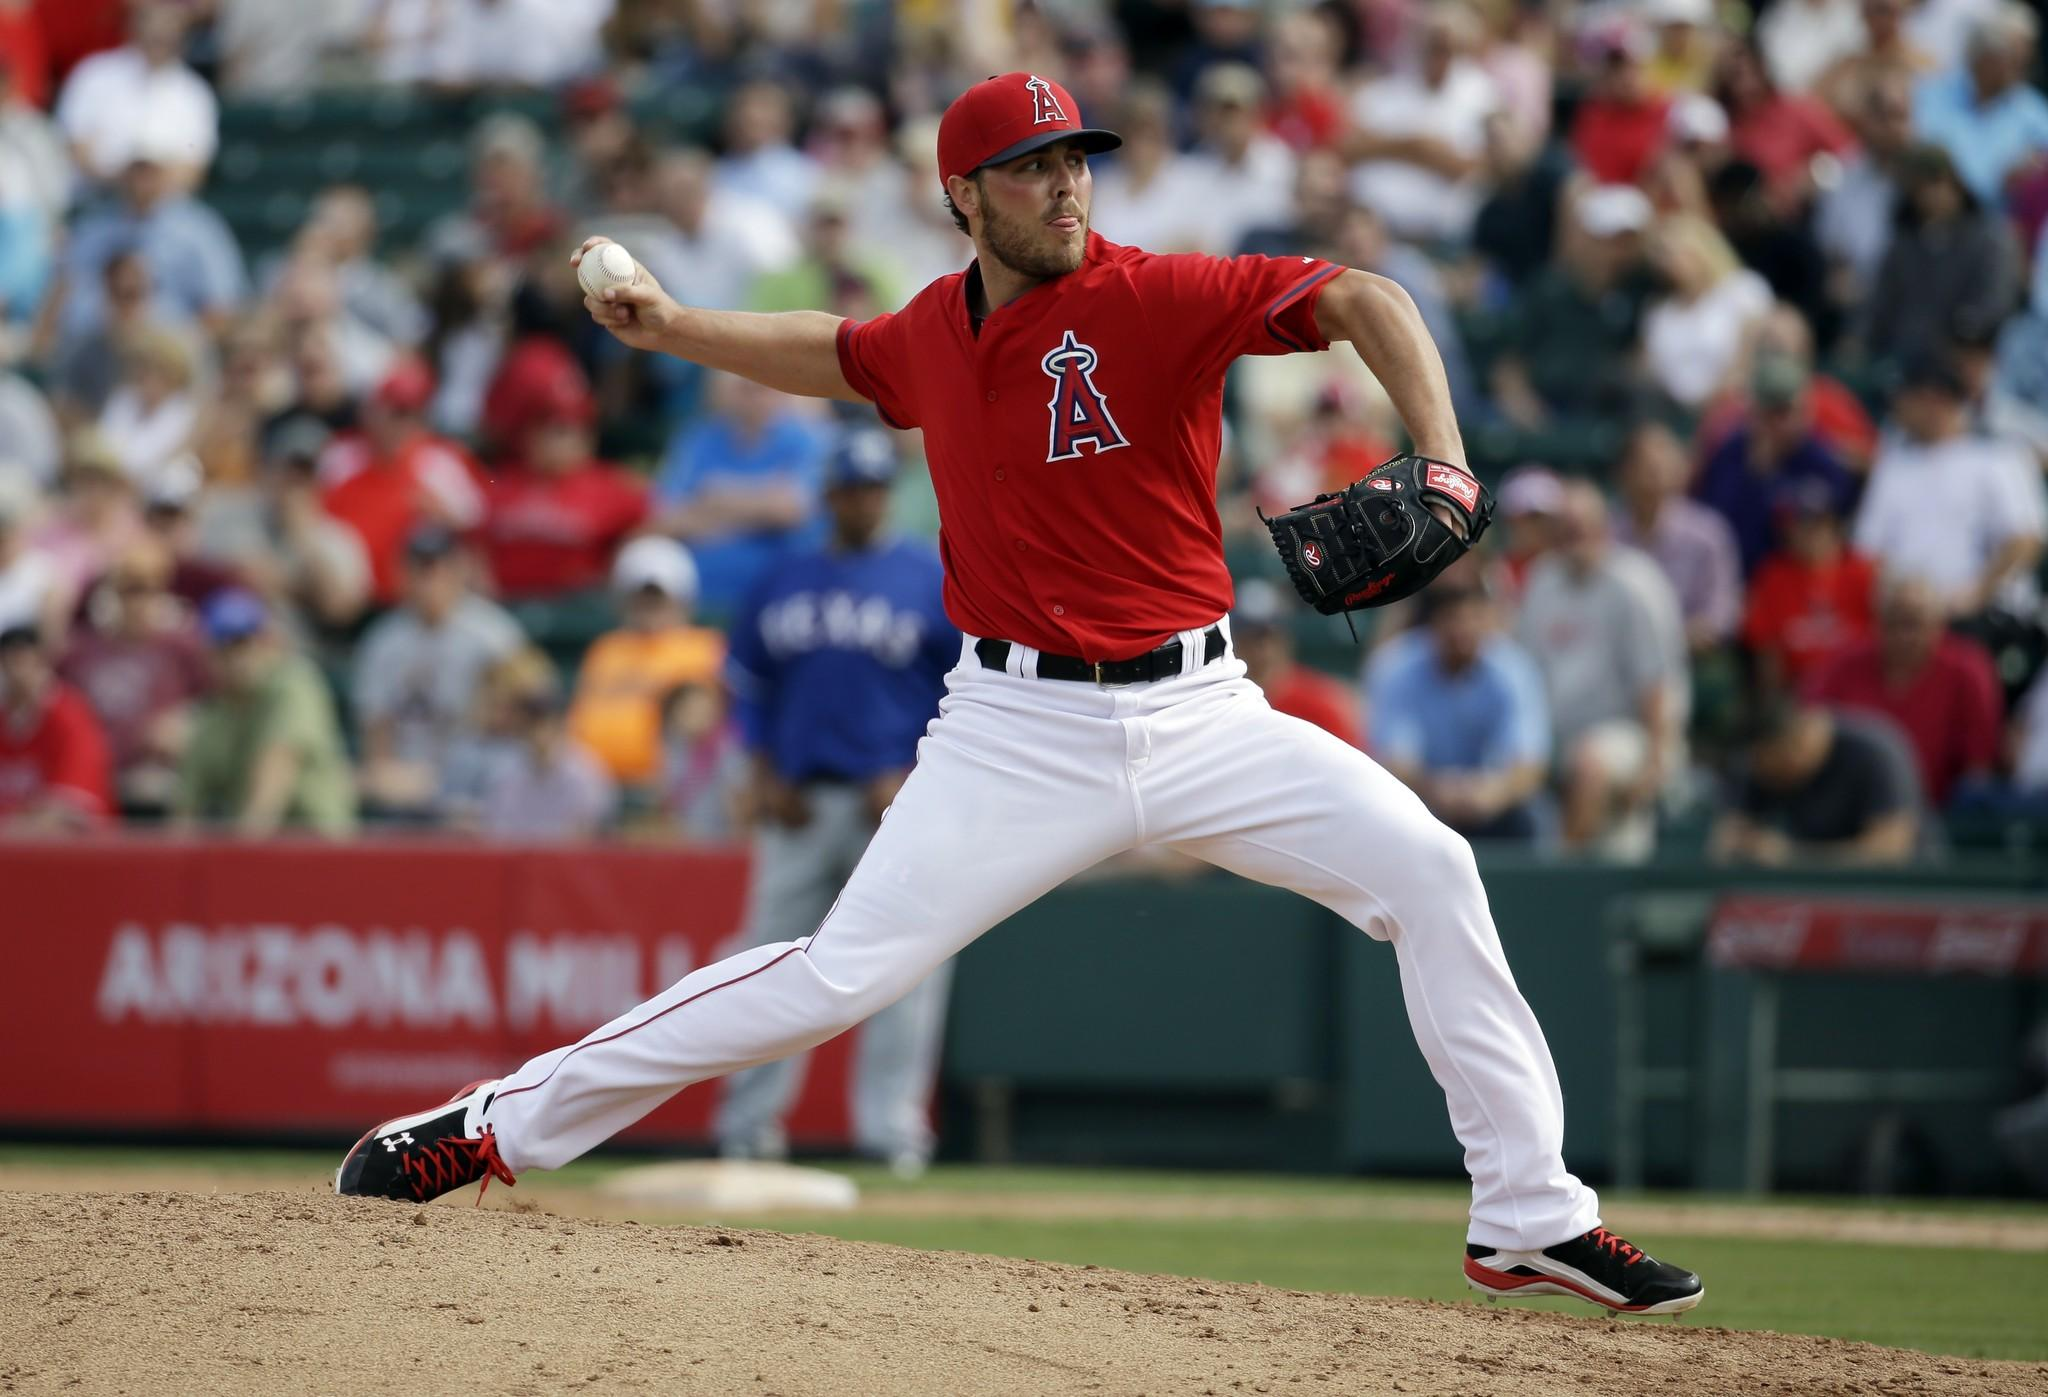 Angels reliever Michael Kohn delivers a pitch during an exhibition game against the Texas Rangers in March.